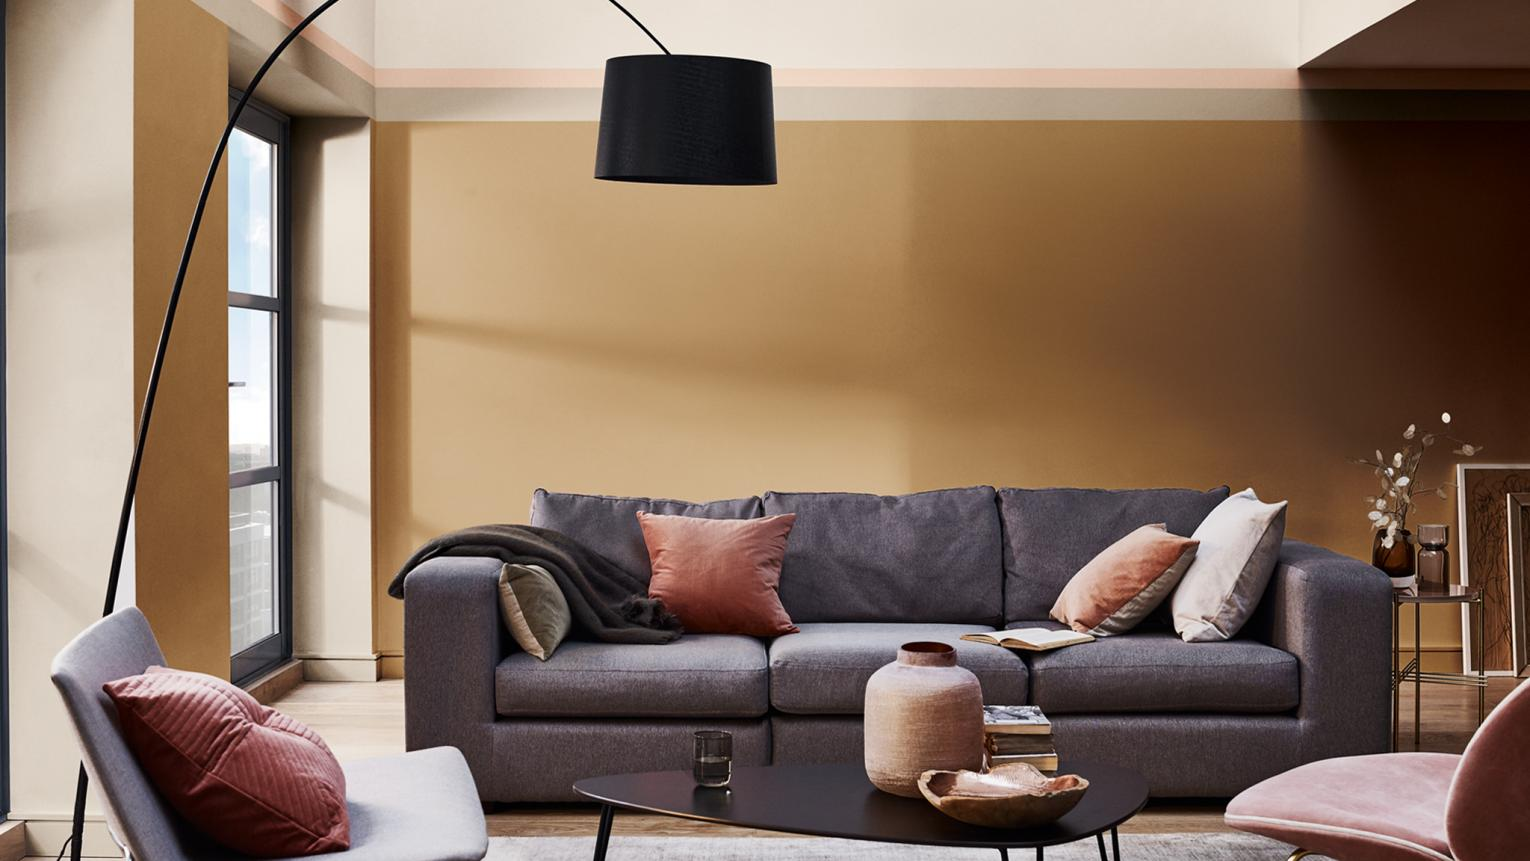 Dulux-Colour-Futures-Colour-of-the-Year-2019-A-place-to-think-Livingroom-Inspiration-HongKong-01